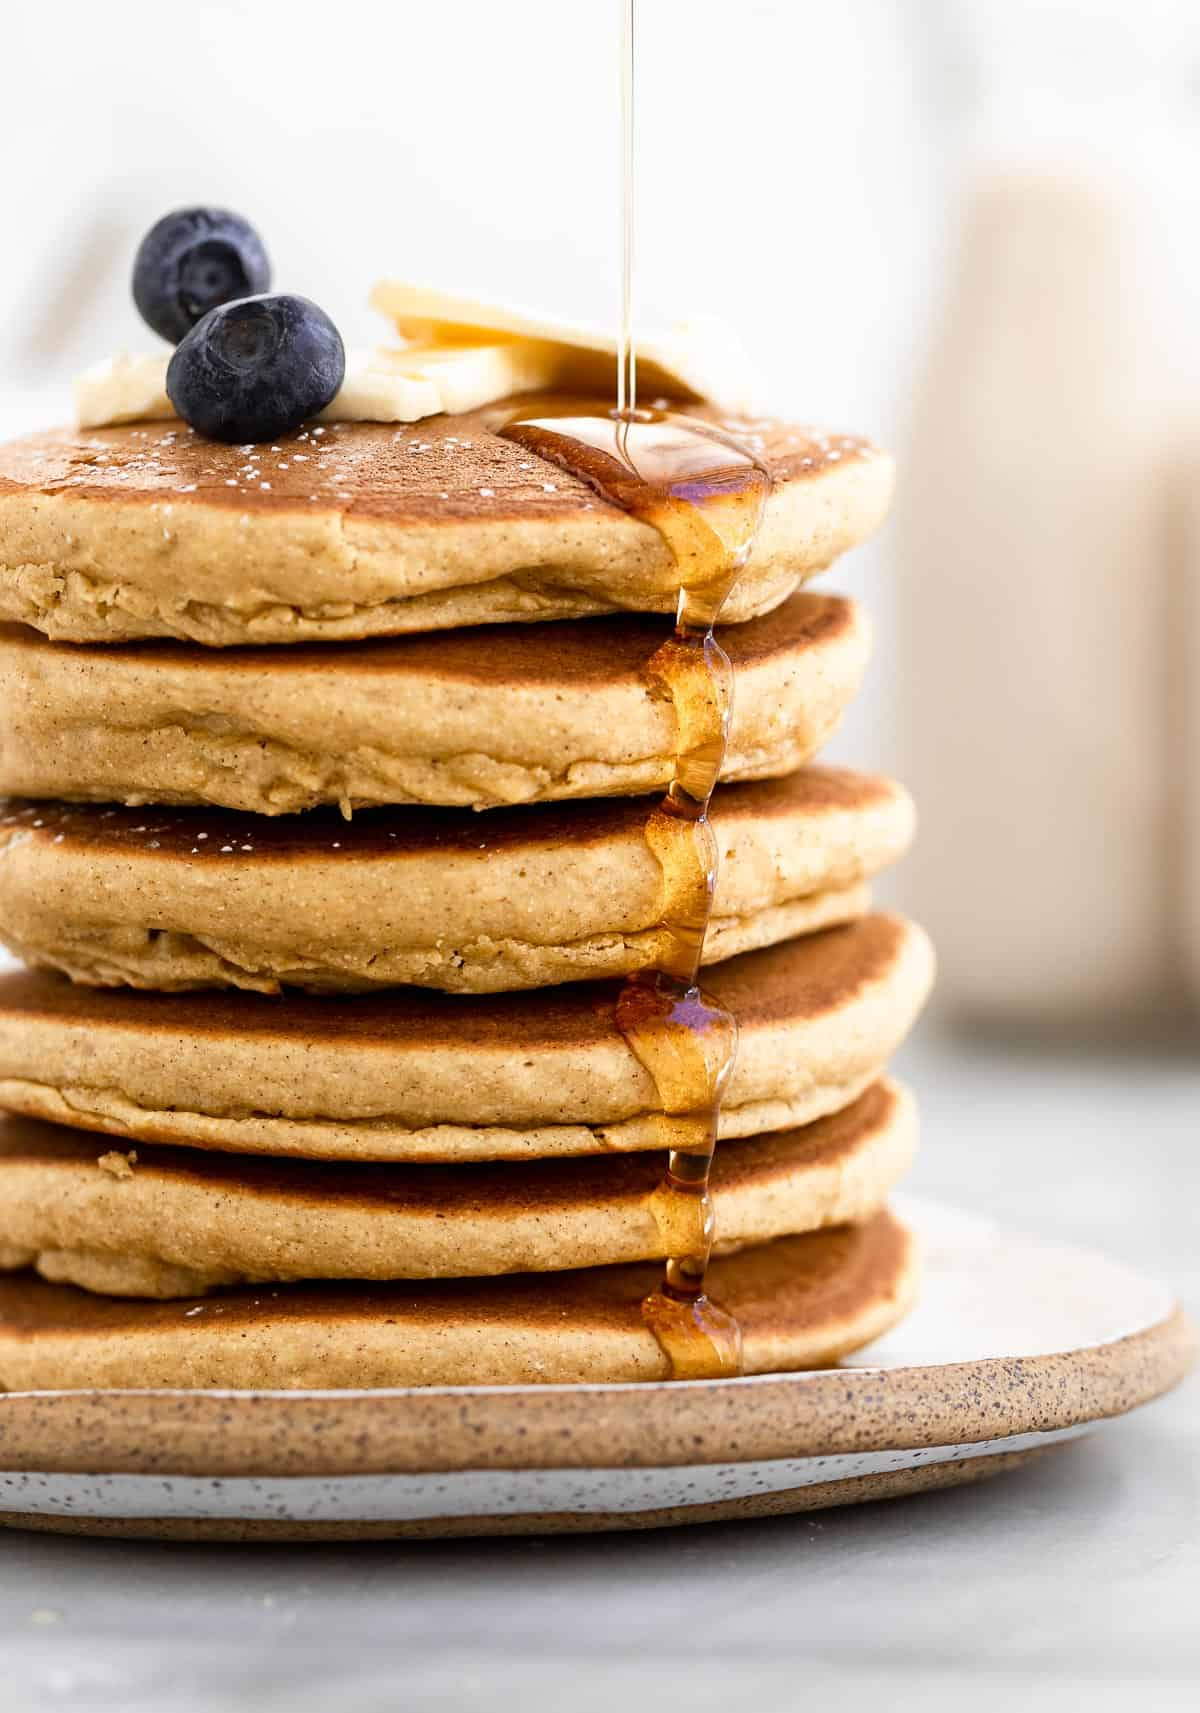 up close image of a stack of pancakes with maple syrup dripping down